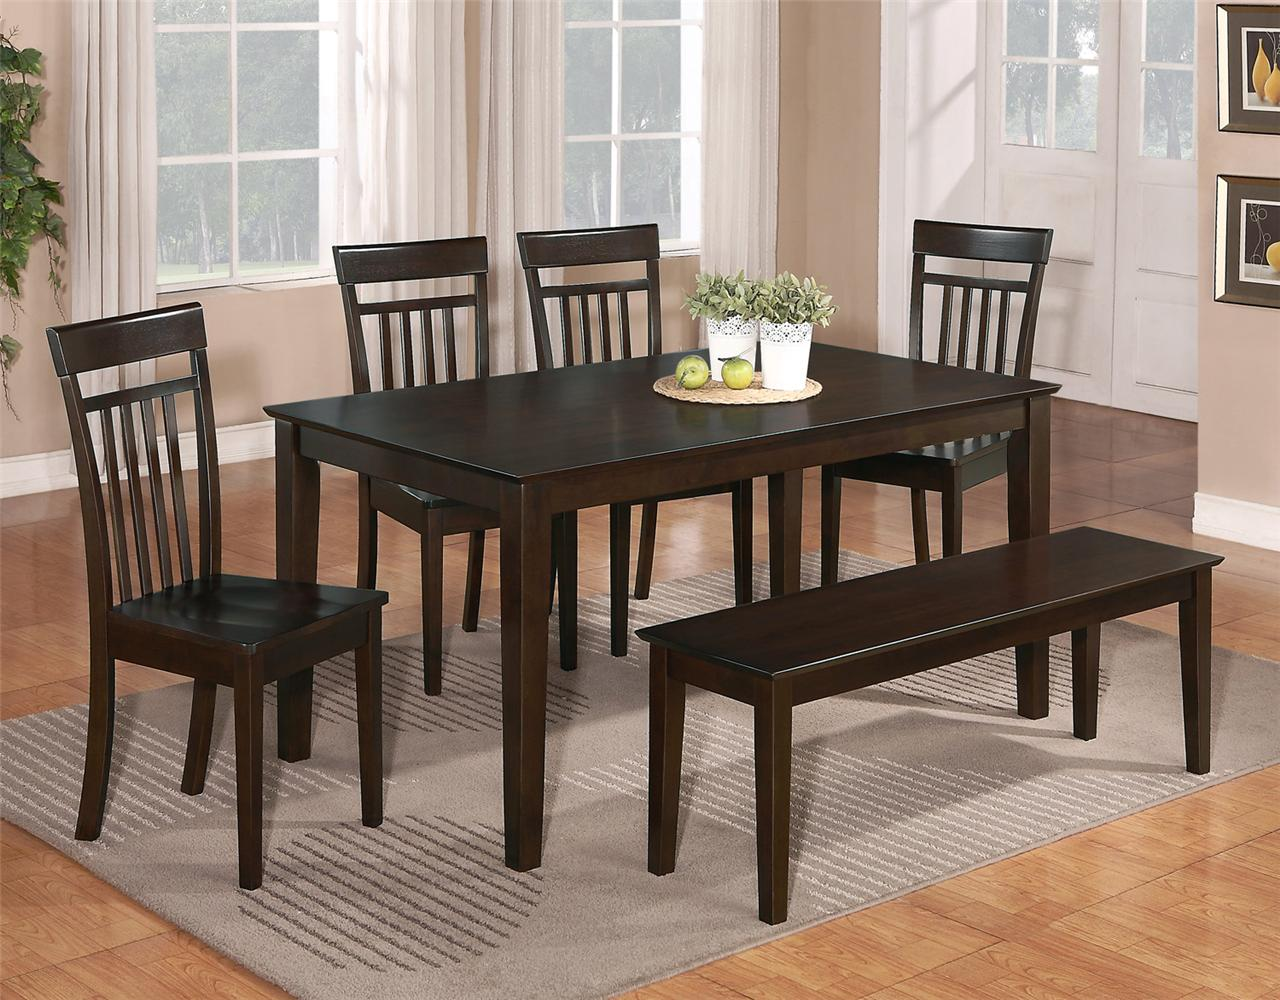 6 pc dinette kitchen dining room set table w 4 wood chair for Dining room table and 6 chairs